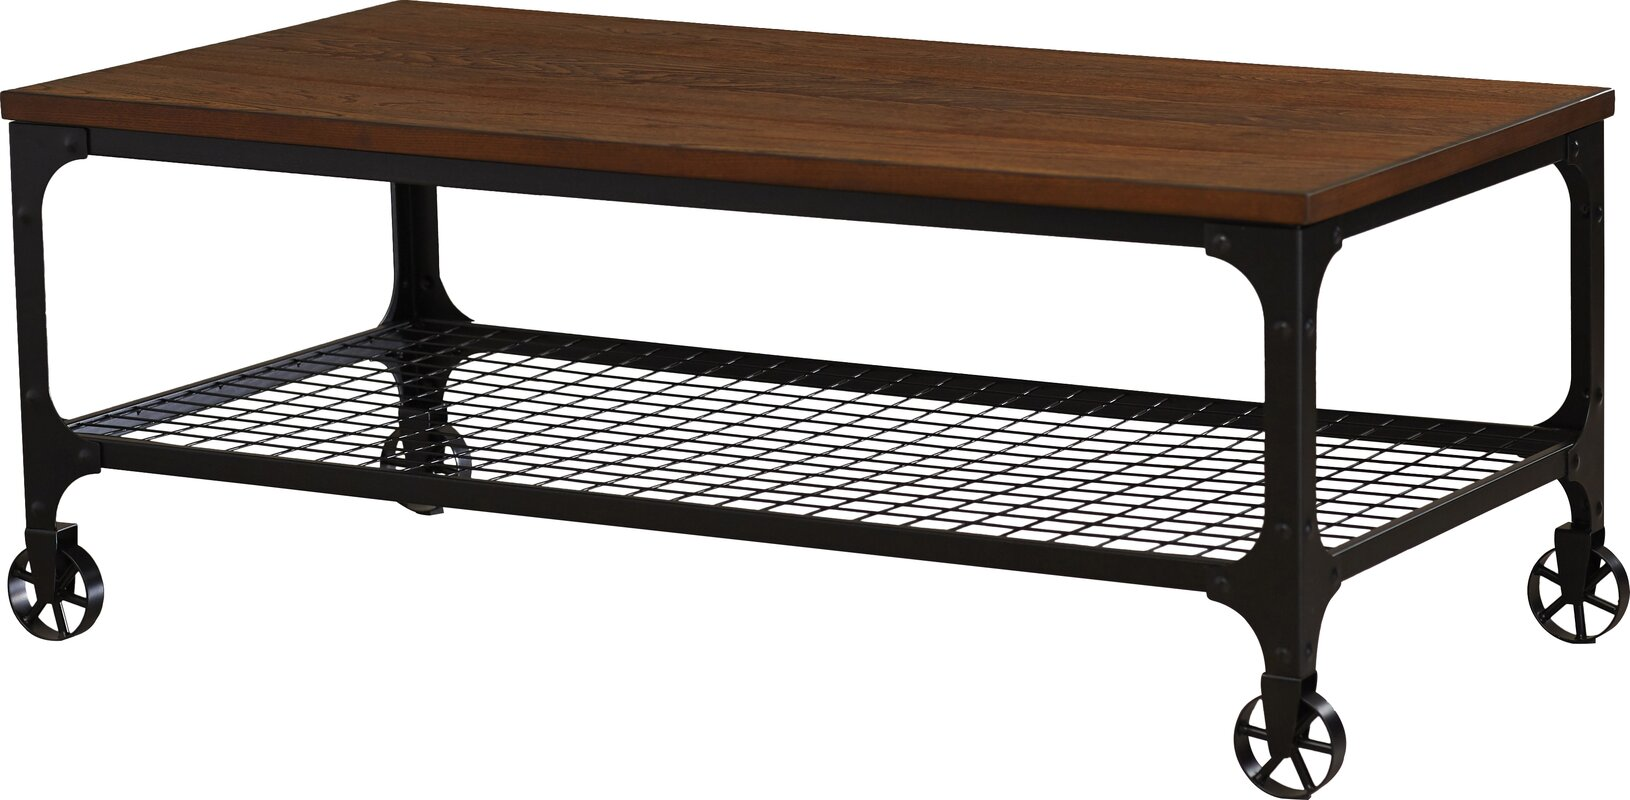 Mercury row corvus rectangle industrial coffee table for Wayfair industrial coffee table